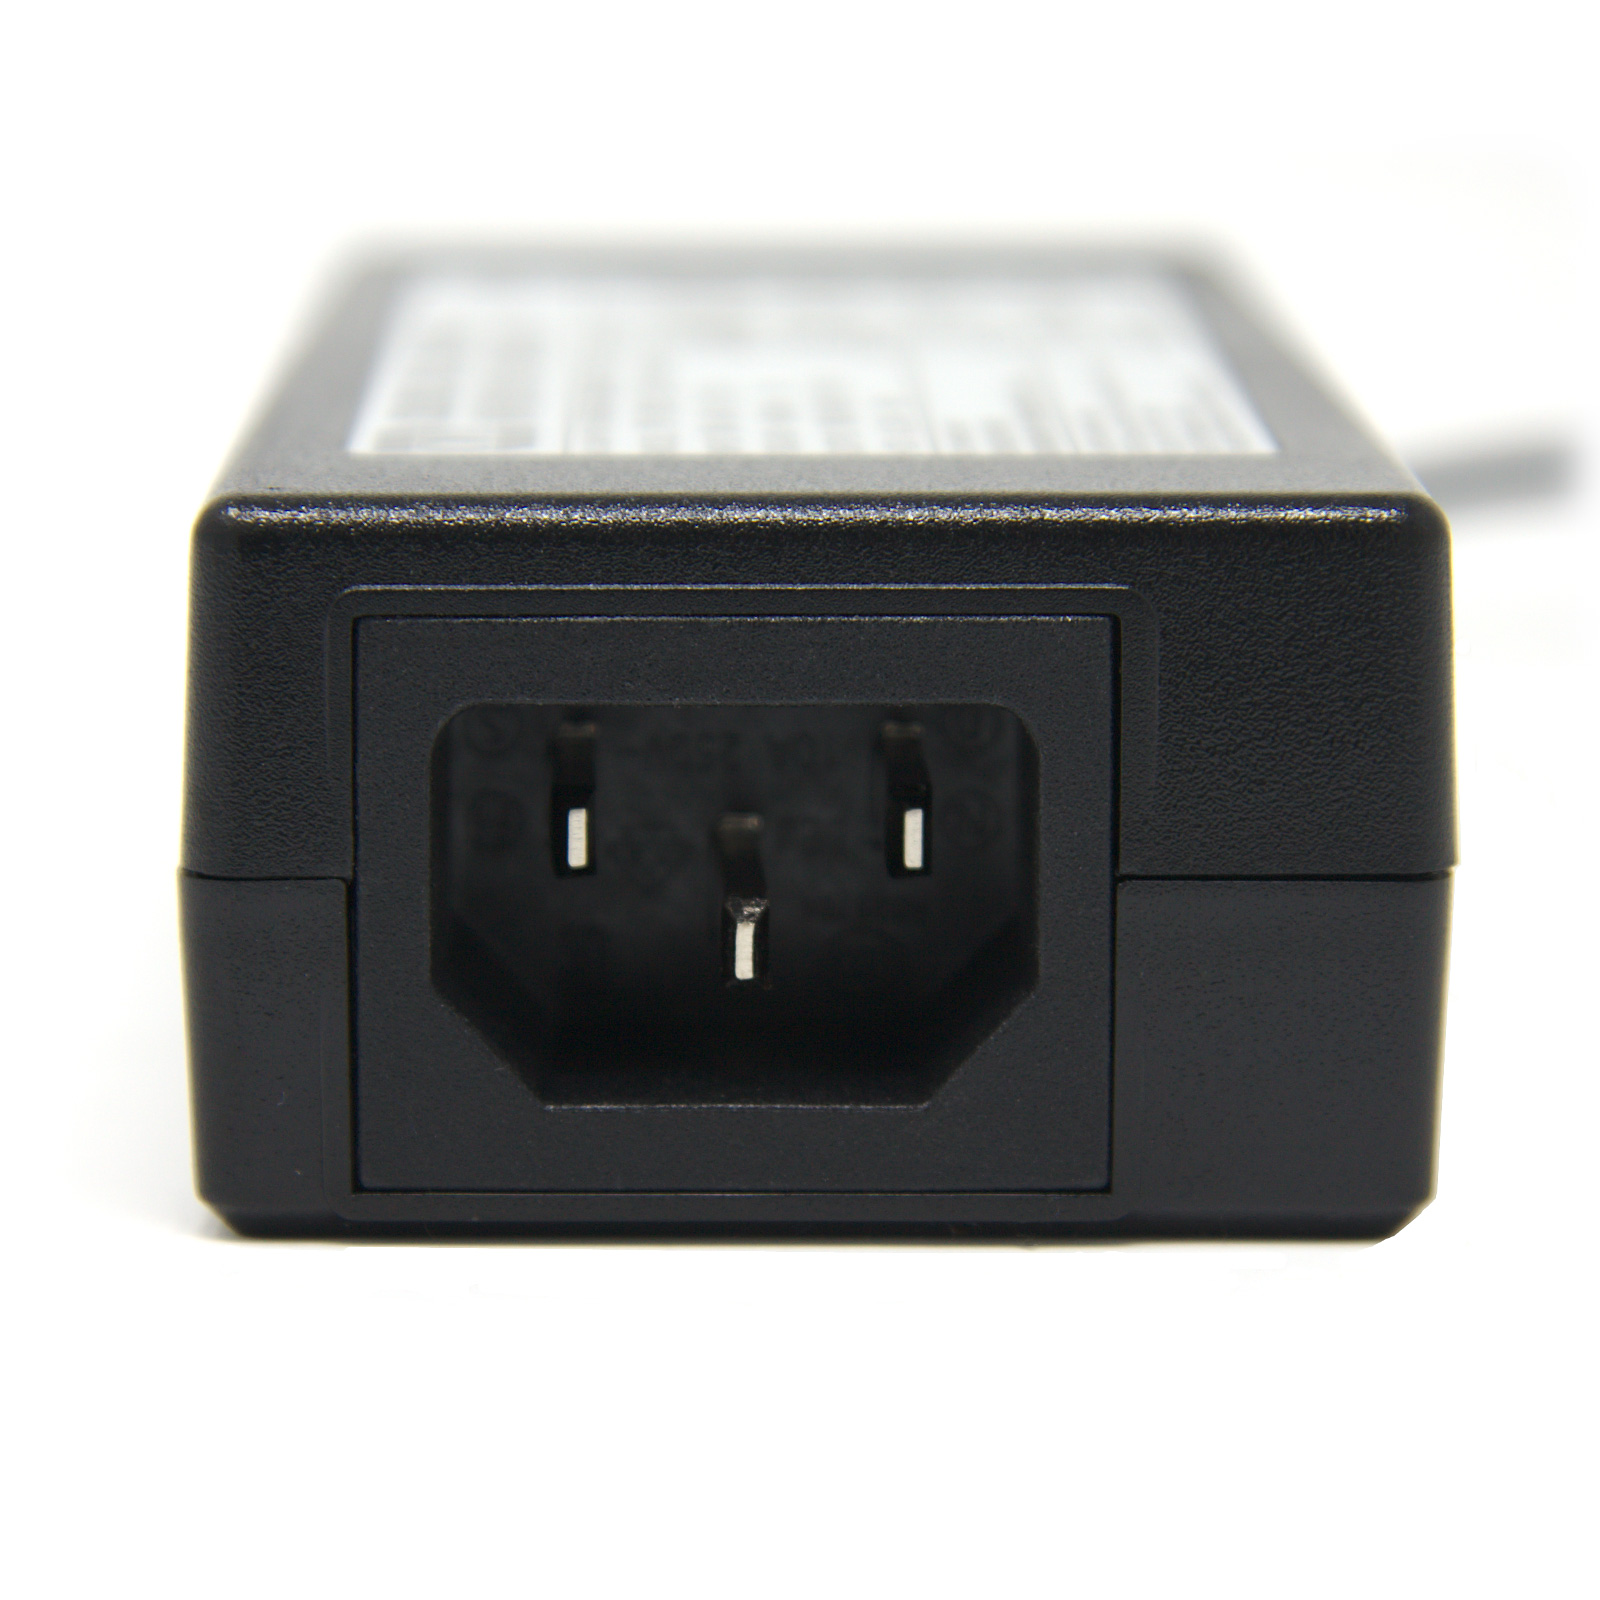 Protectli 40W Power Supply with Power Cord